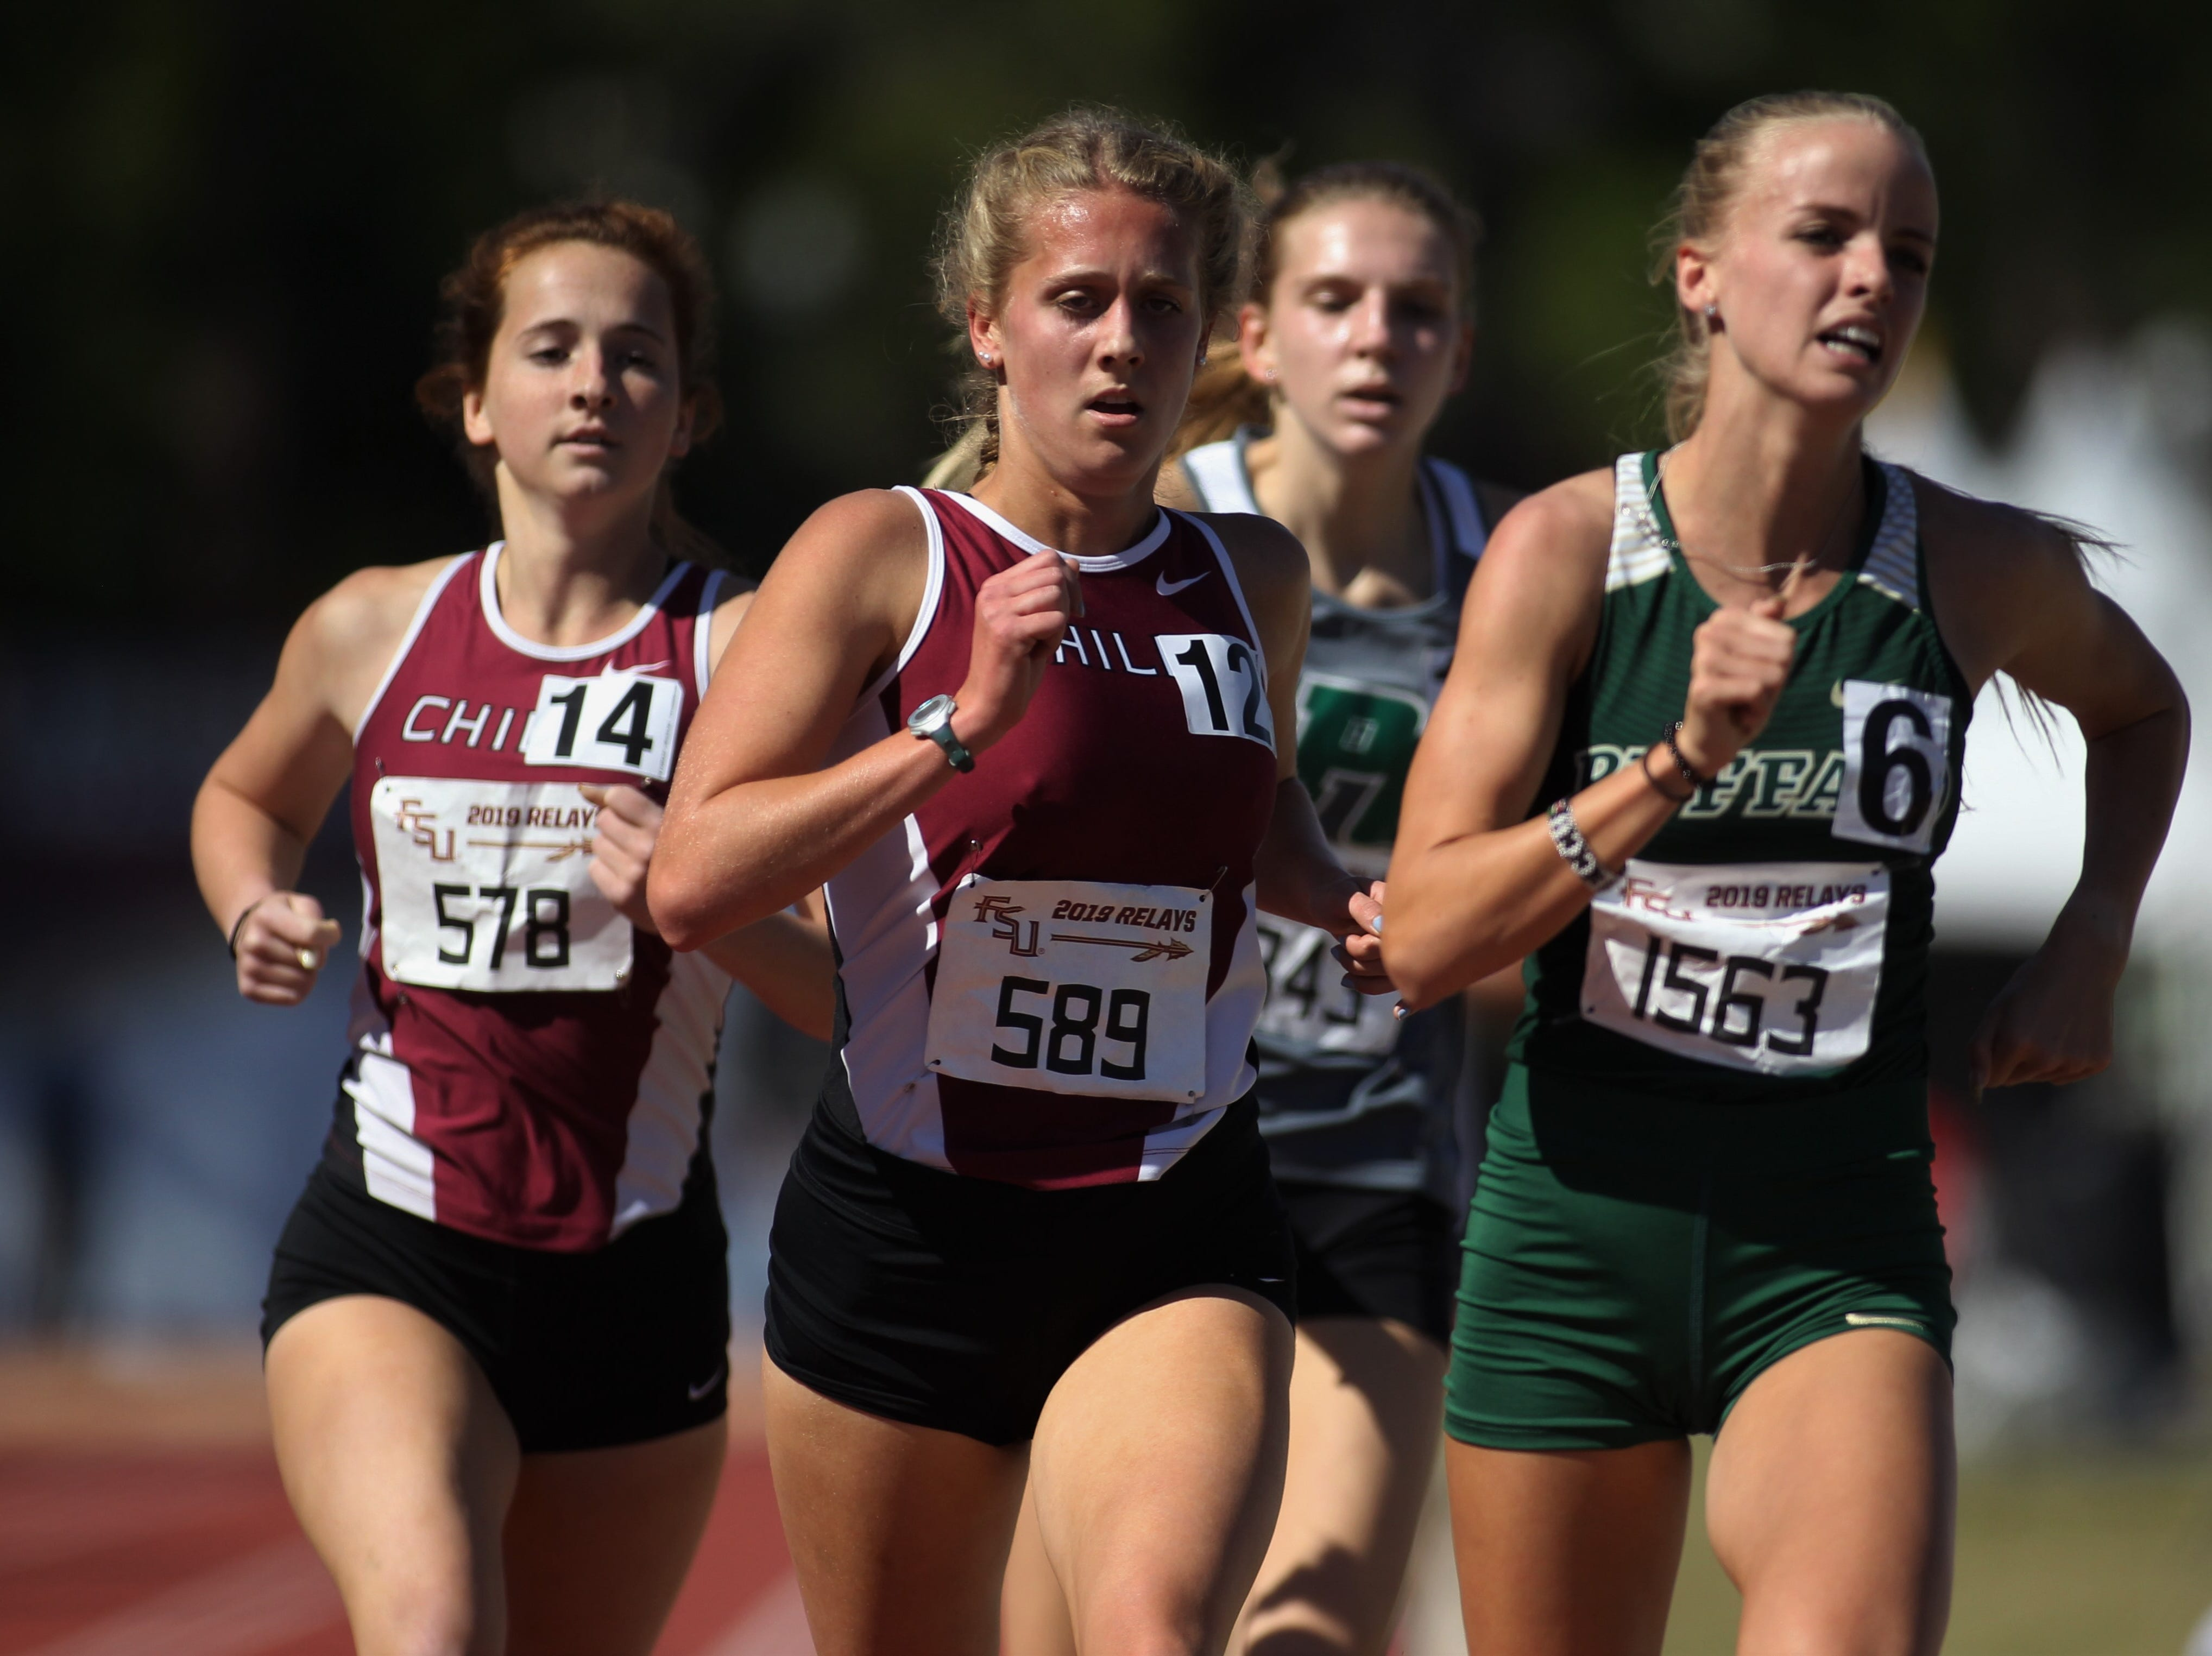 Chiles junior Caitlin Wilkey runs the 1600 Invite ahead of teammate Emily Culley during the 40th annual FSU Relays at Mike Long Track on Saturday, March 23, 2019.